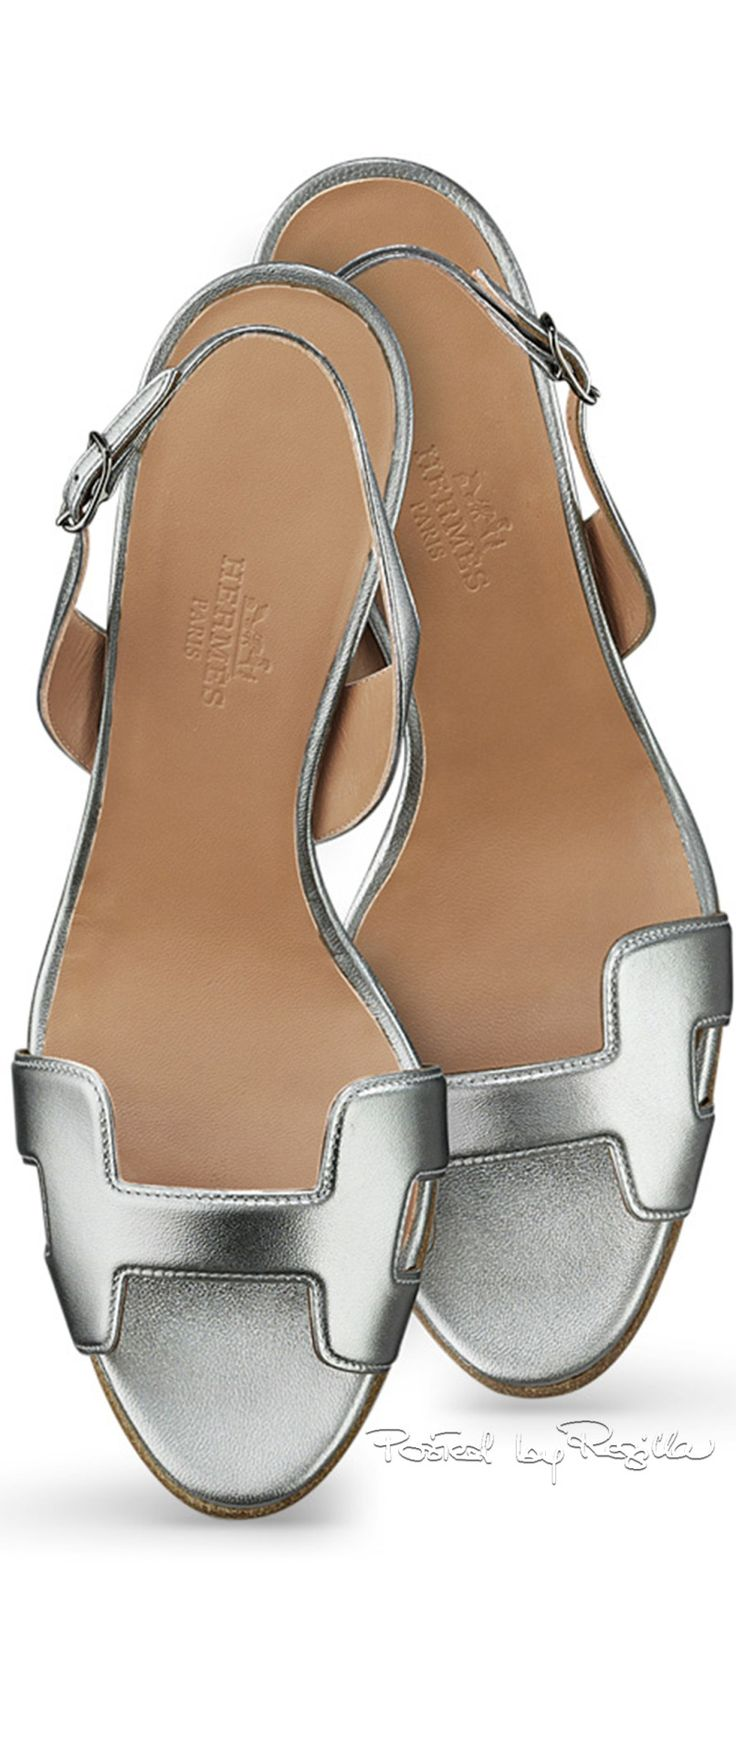 Hermès Metallic Sandal | House of Beccaria~